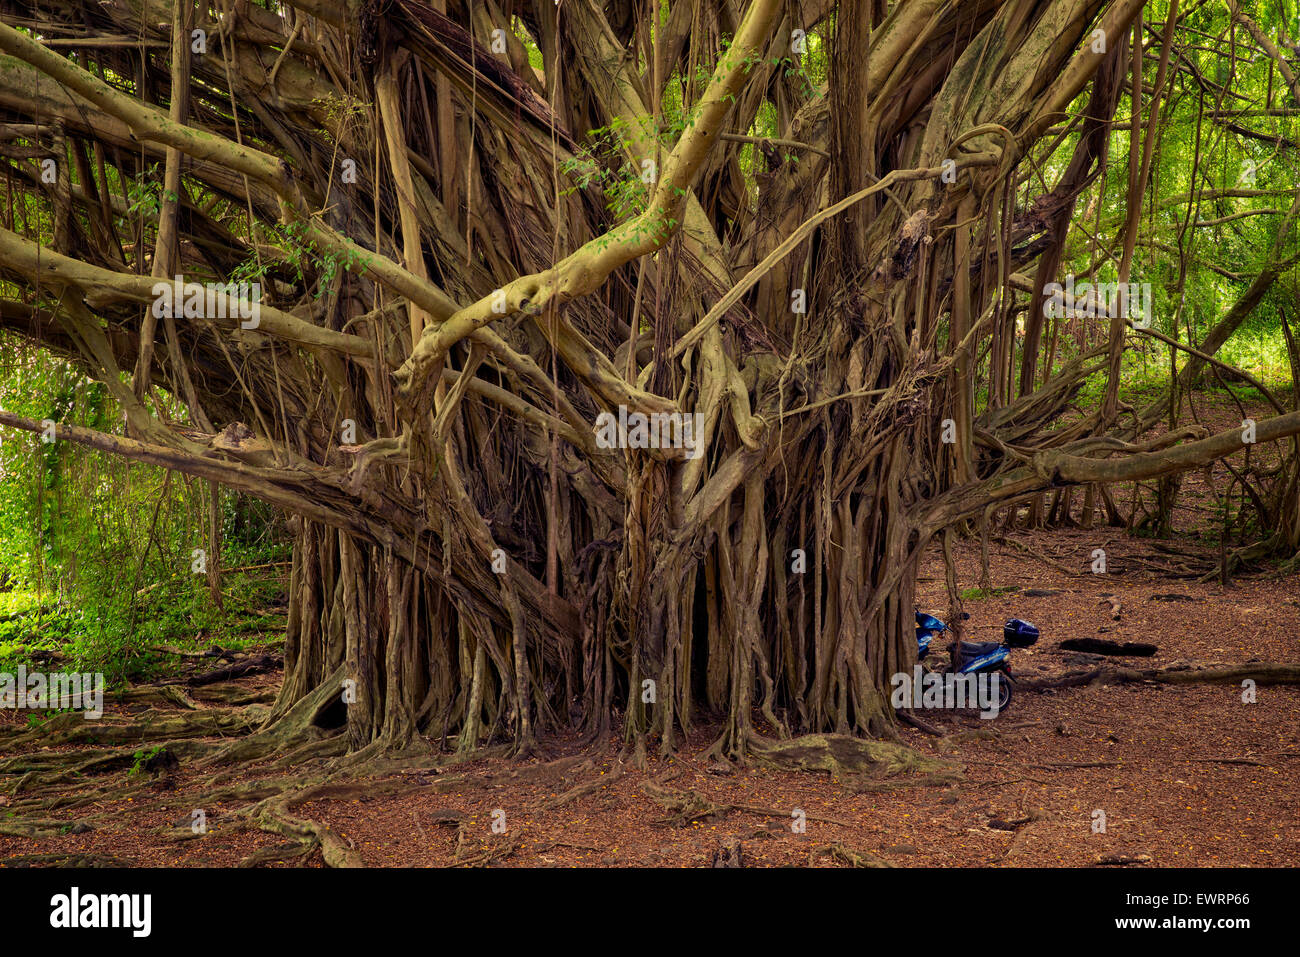 Banyon Tree. Hawaii, The Big Island. Stock Photo